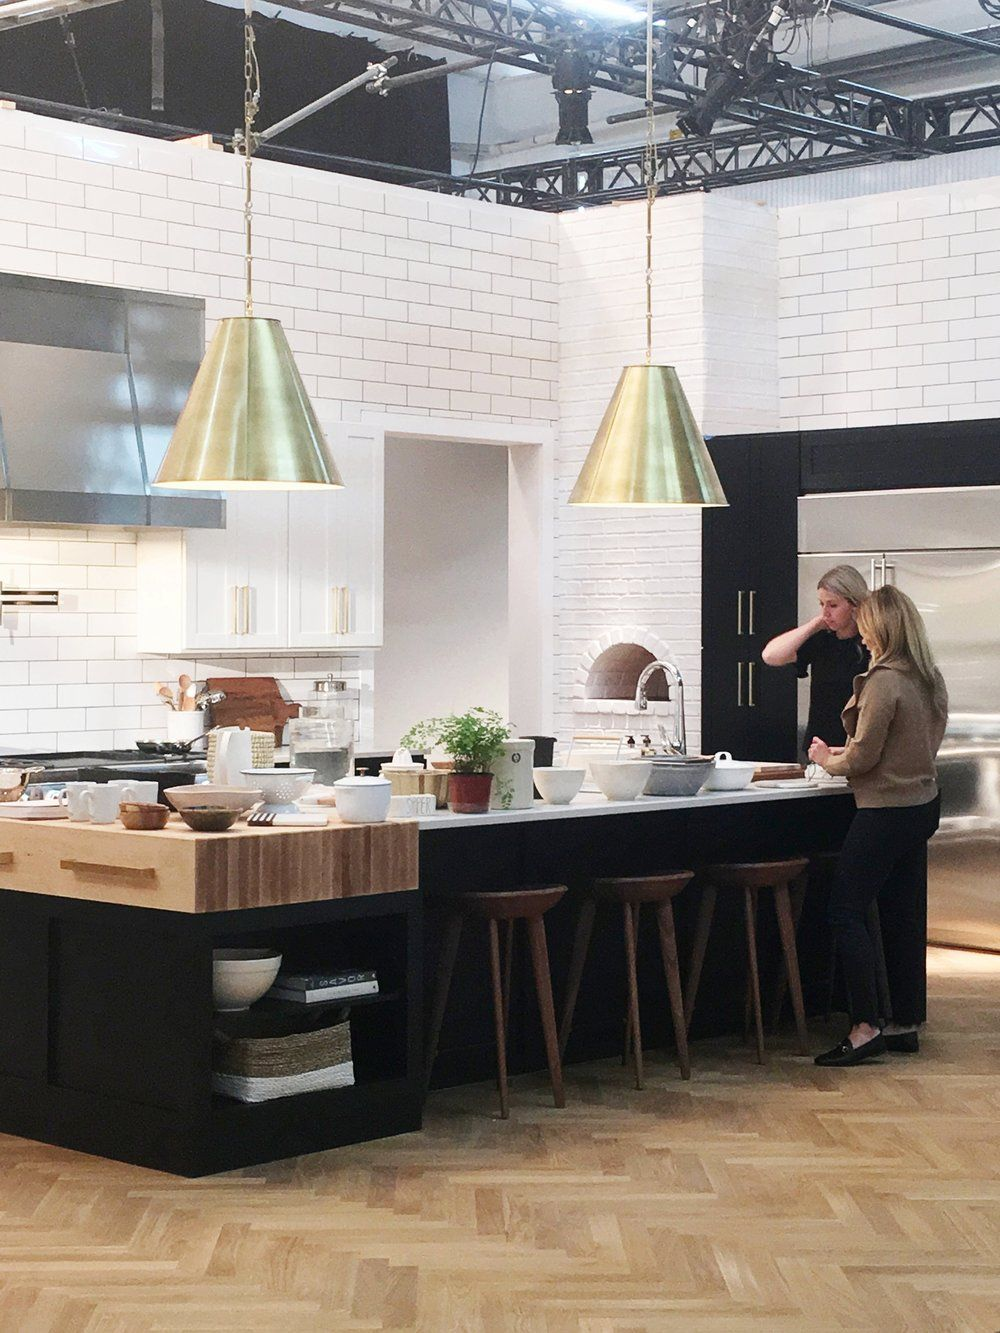 Scenes Of Food Network Fantasy Kitchen